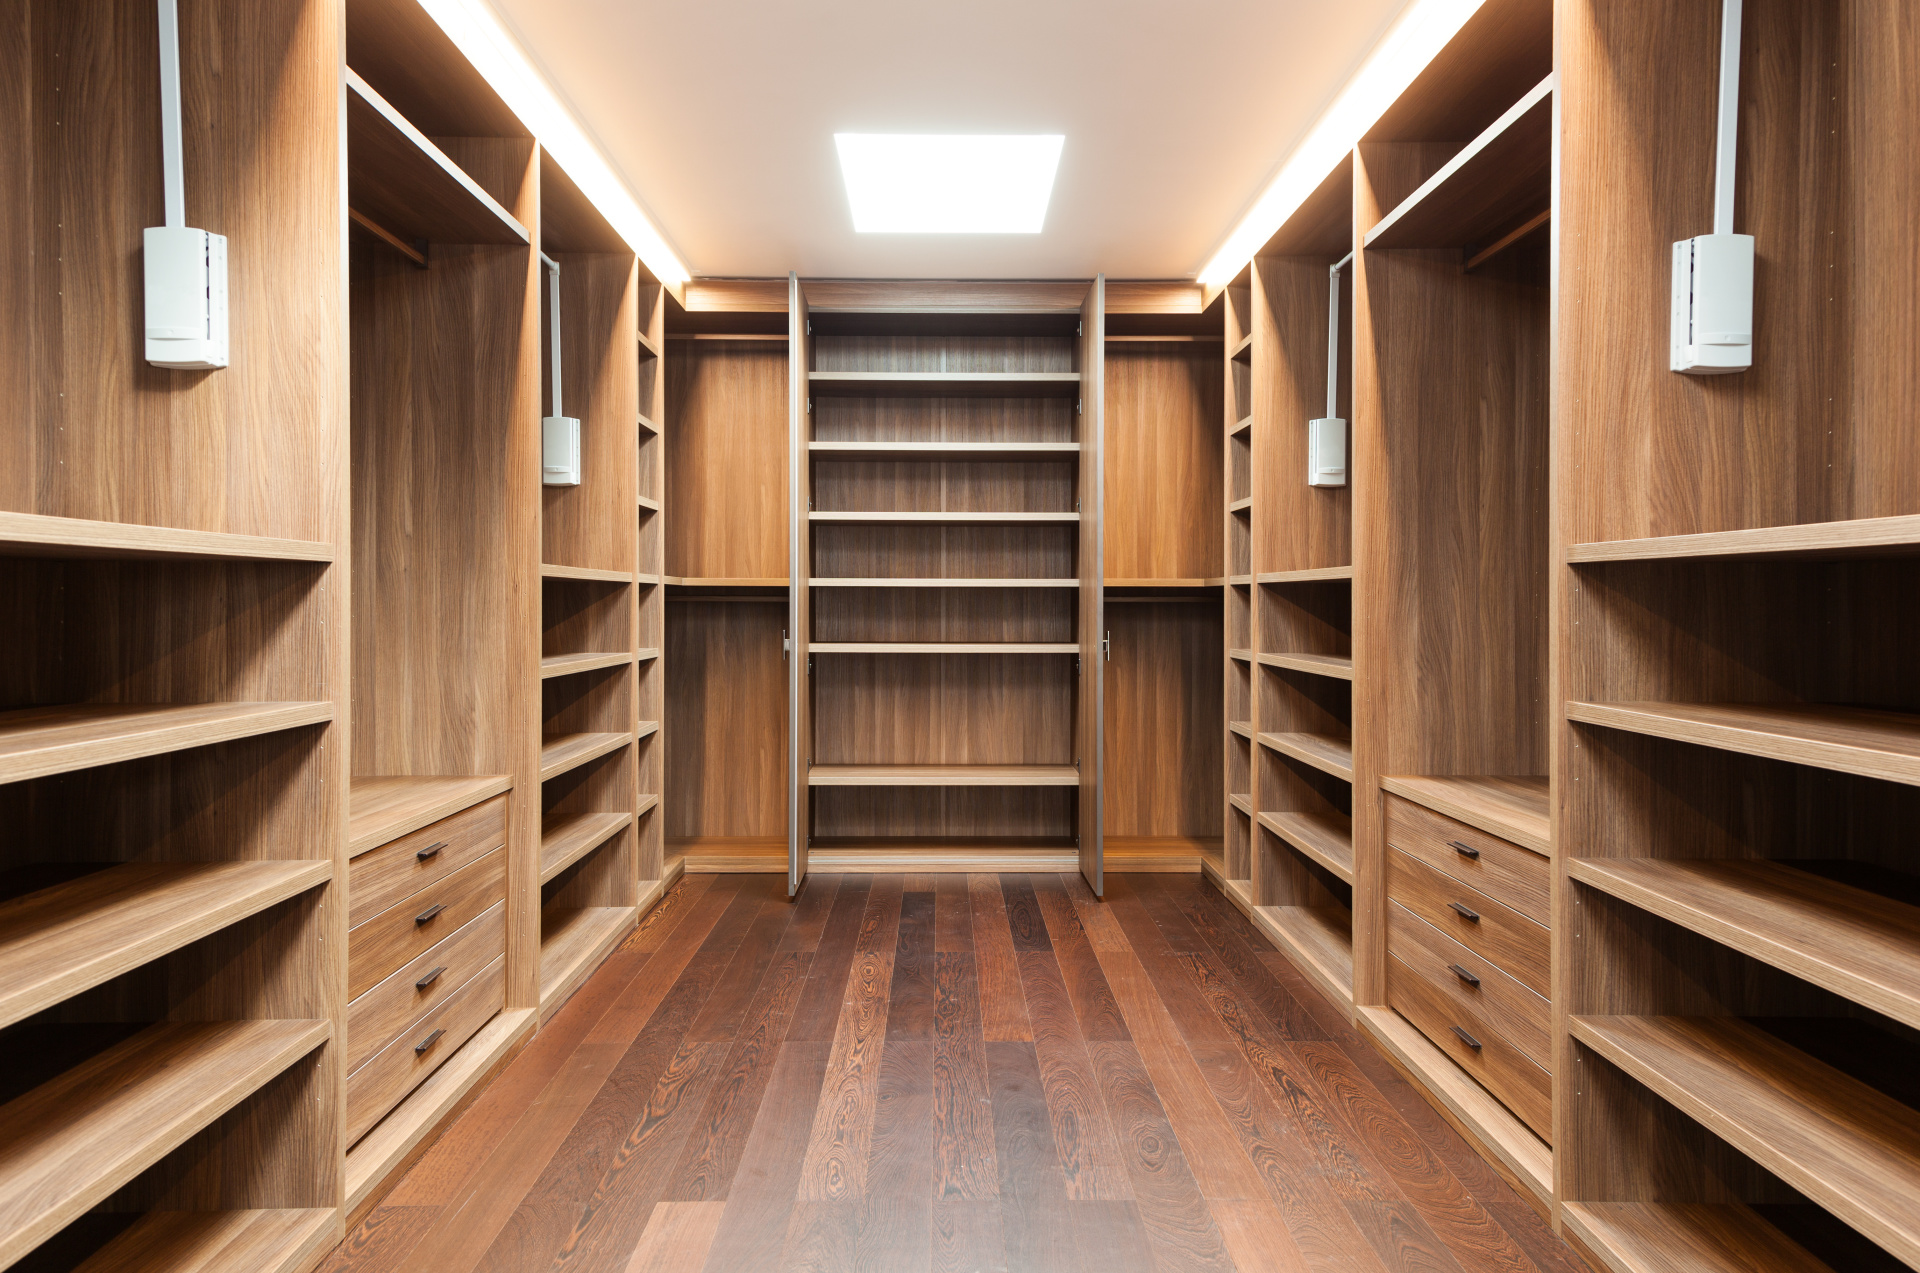 Interior of modern house  wide wooden dressing room, interior of a modern house Landsons.co.uk